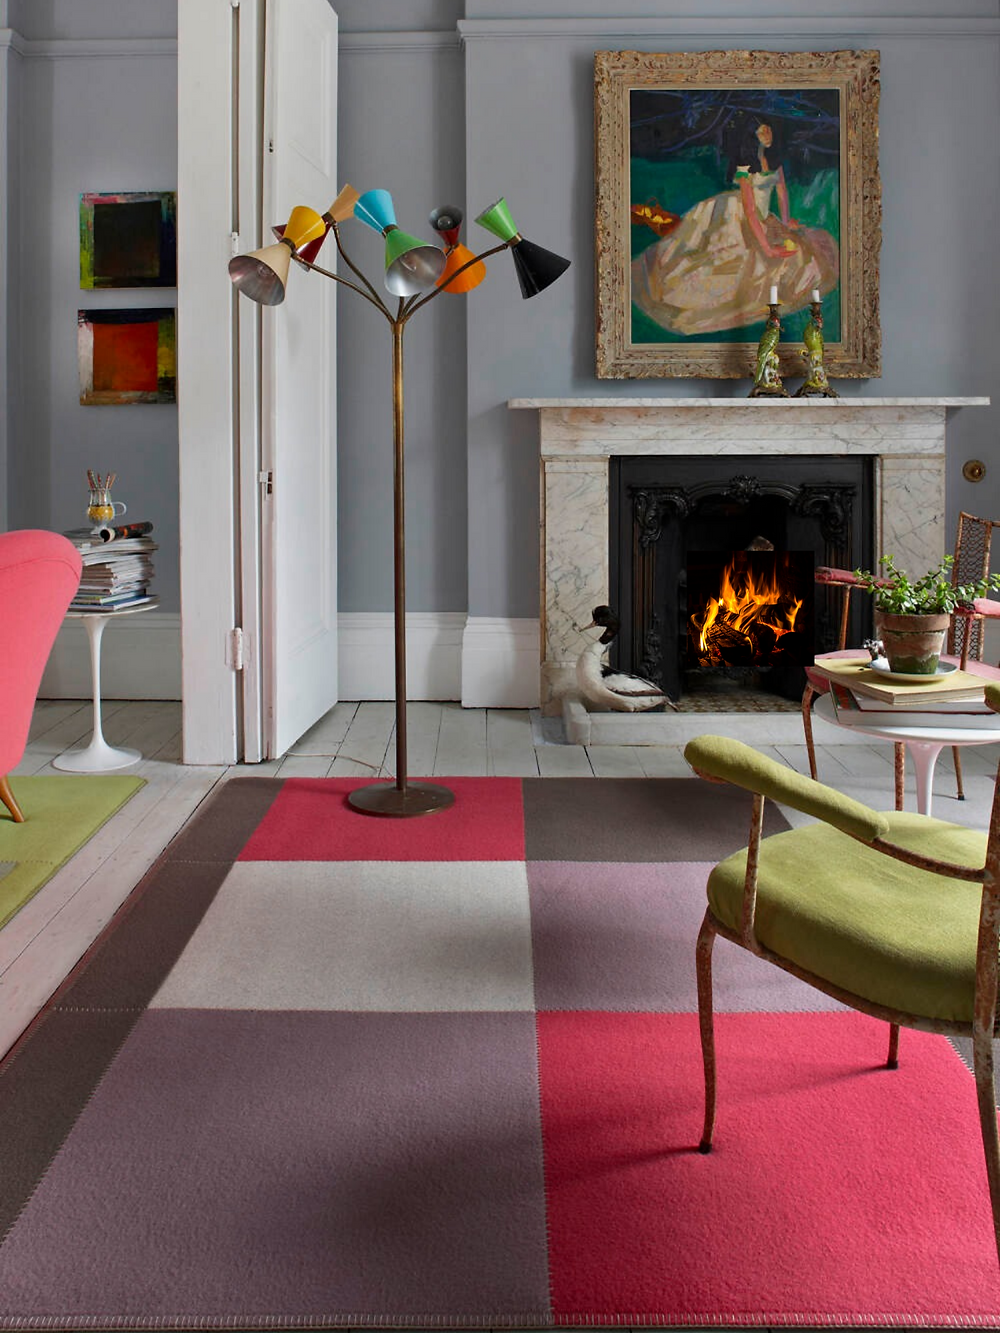 Patchwork style area rug by Roger Oates